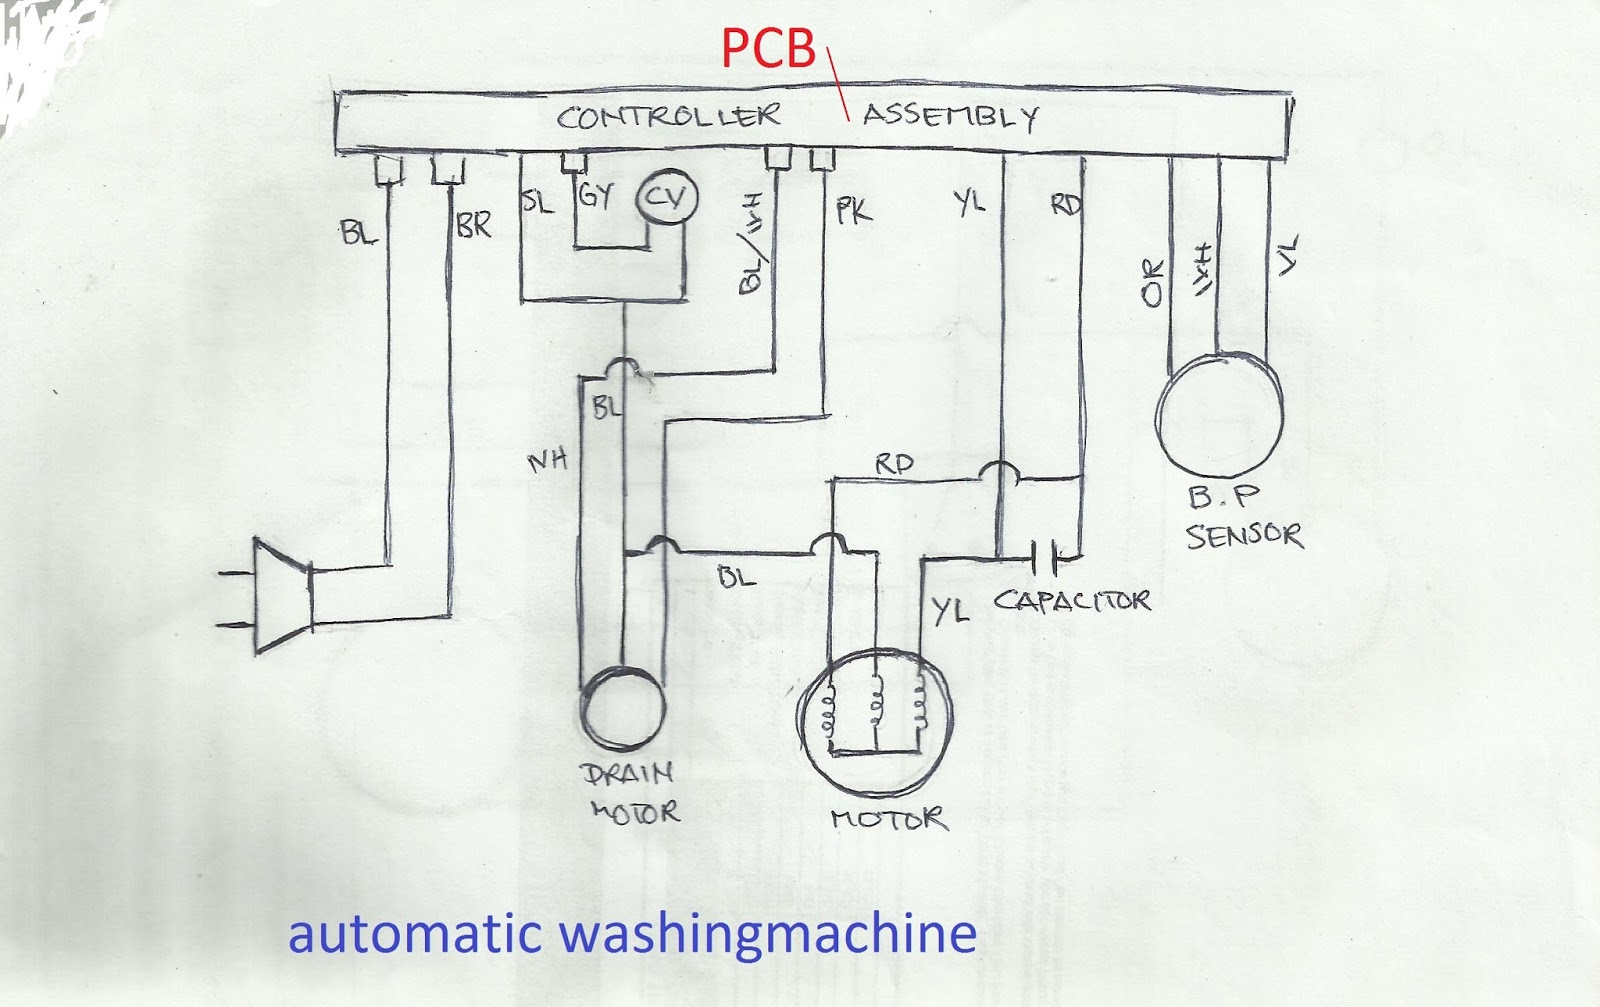 Ac Compressor Wiring Diagram : Window ac capacitor wiring diagram get free image about